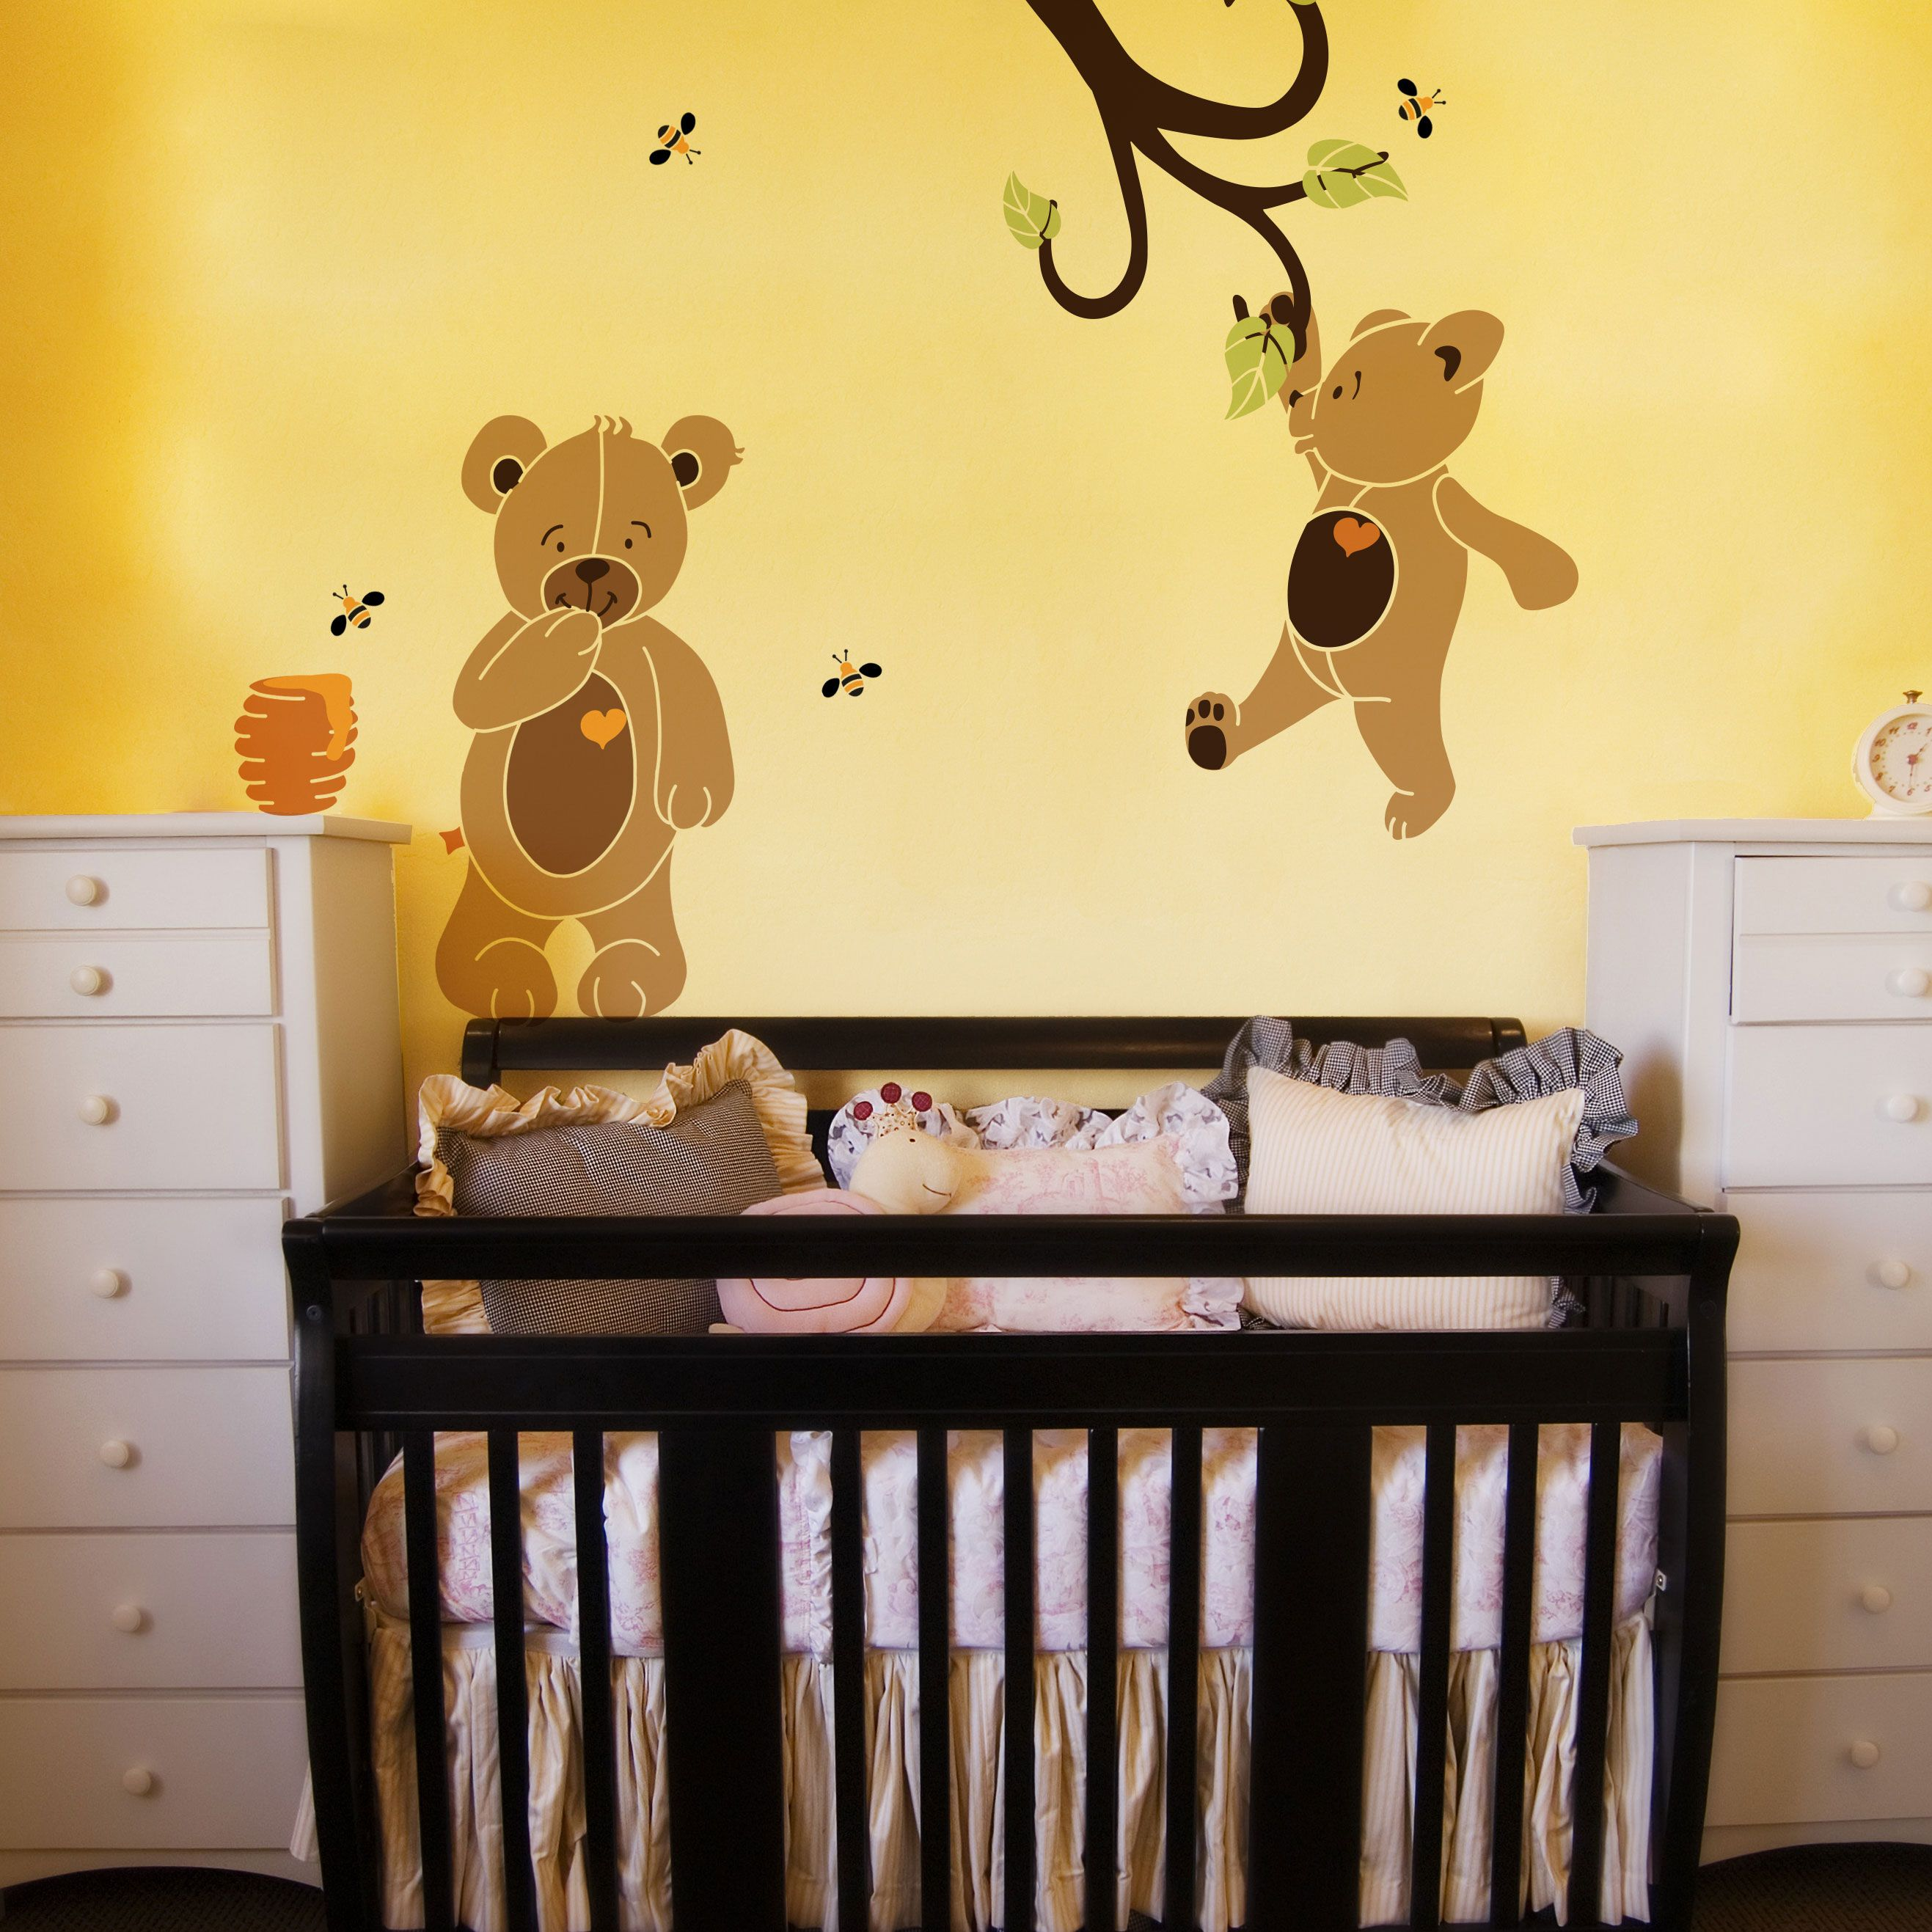 Teddy Bear Wall Stencil Kit | Wall murals, Teddy bear and Stenciling